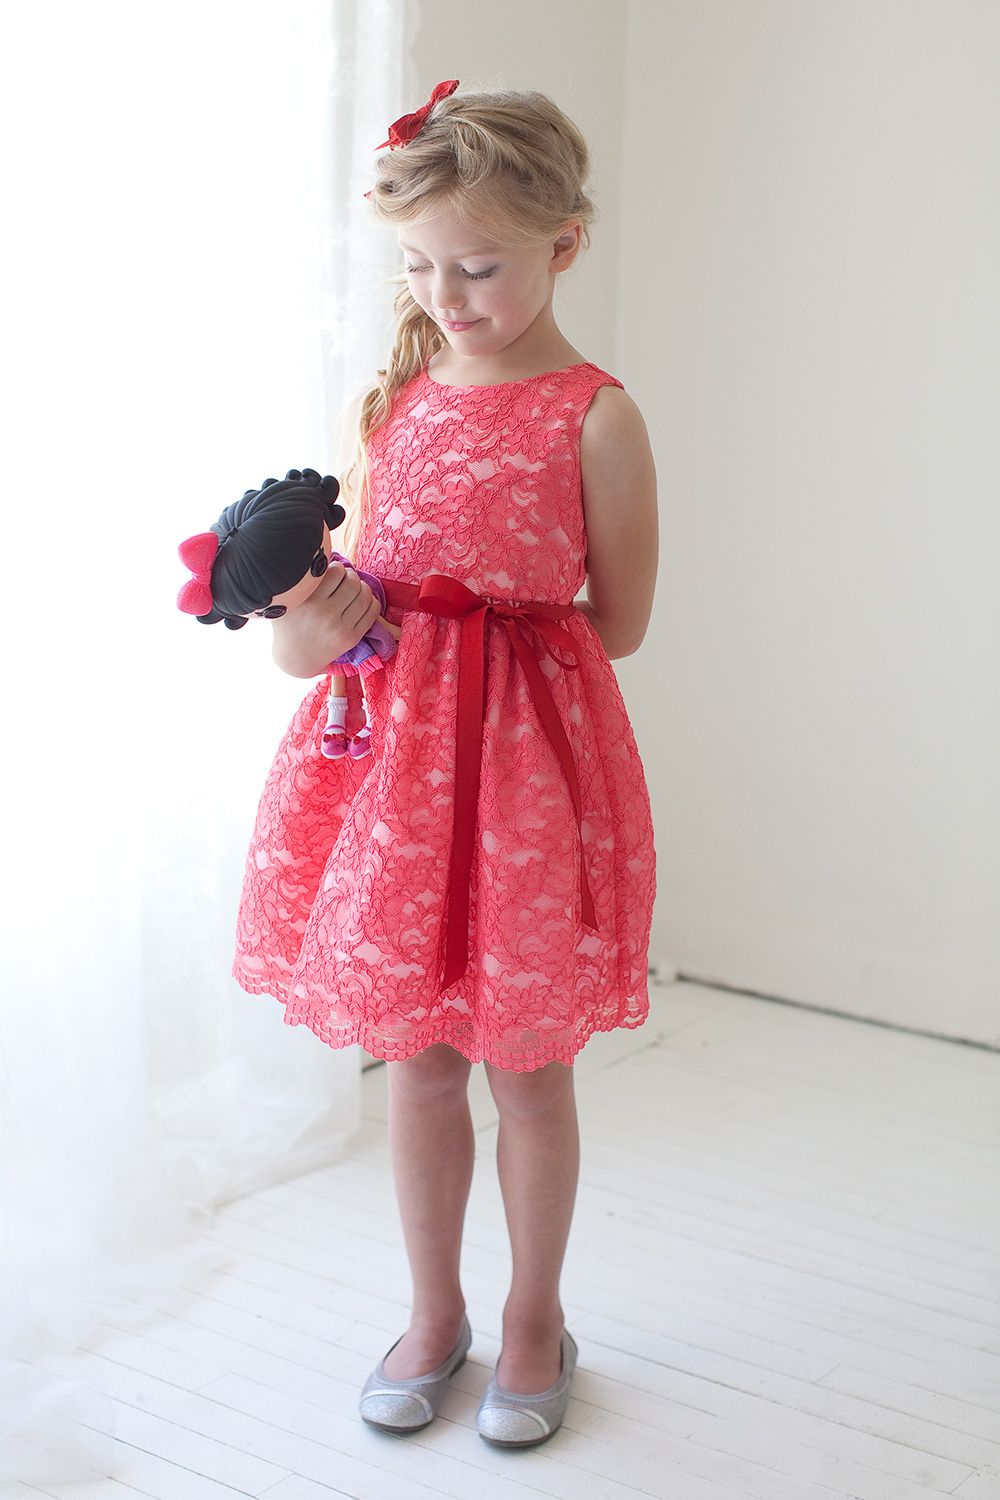 cb99d551605e lace flower girl dresses in ivory and navy | Coral Lace Flower Girl Dress  with Sash